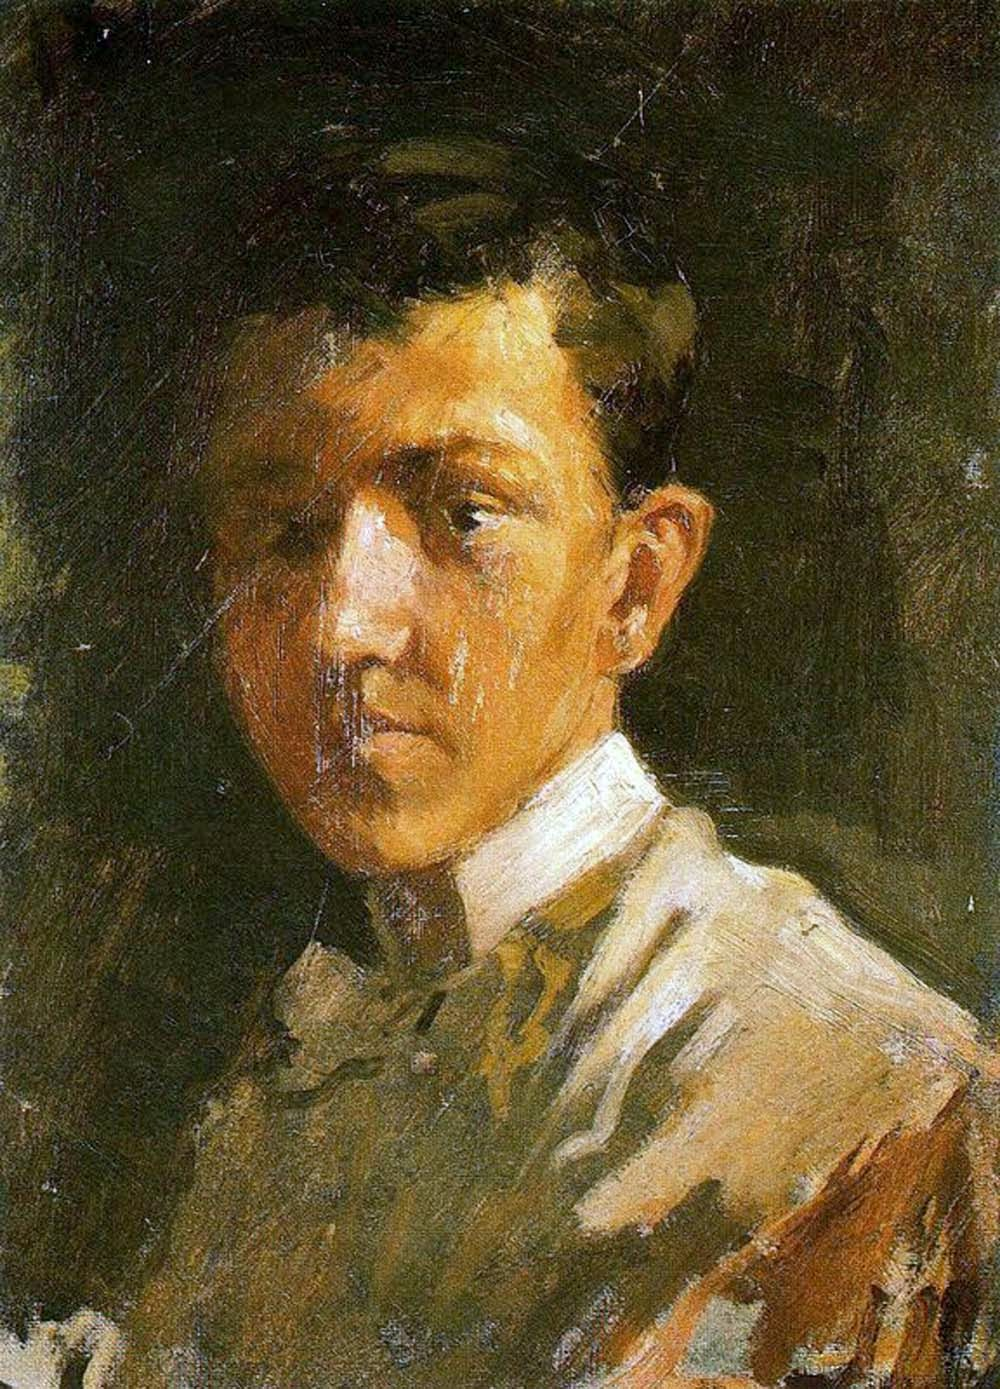 Pablo Picasso, Self Portrait, Portraits of Painters, Fine arts, Painter Pablo Picasso